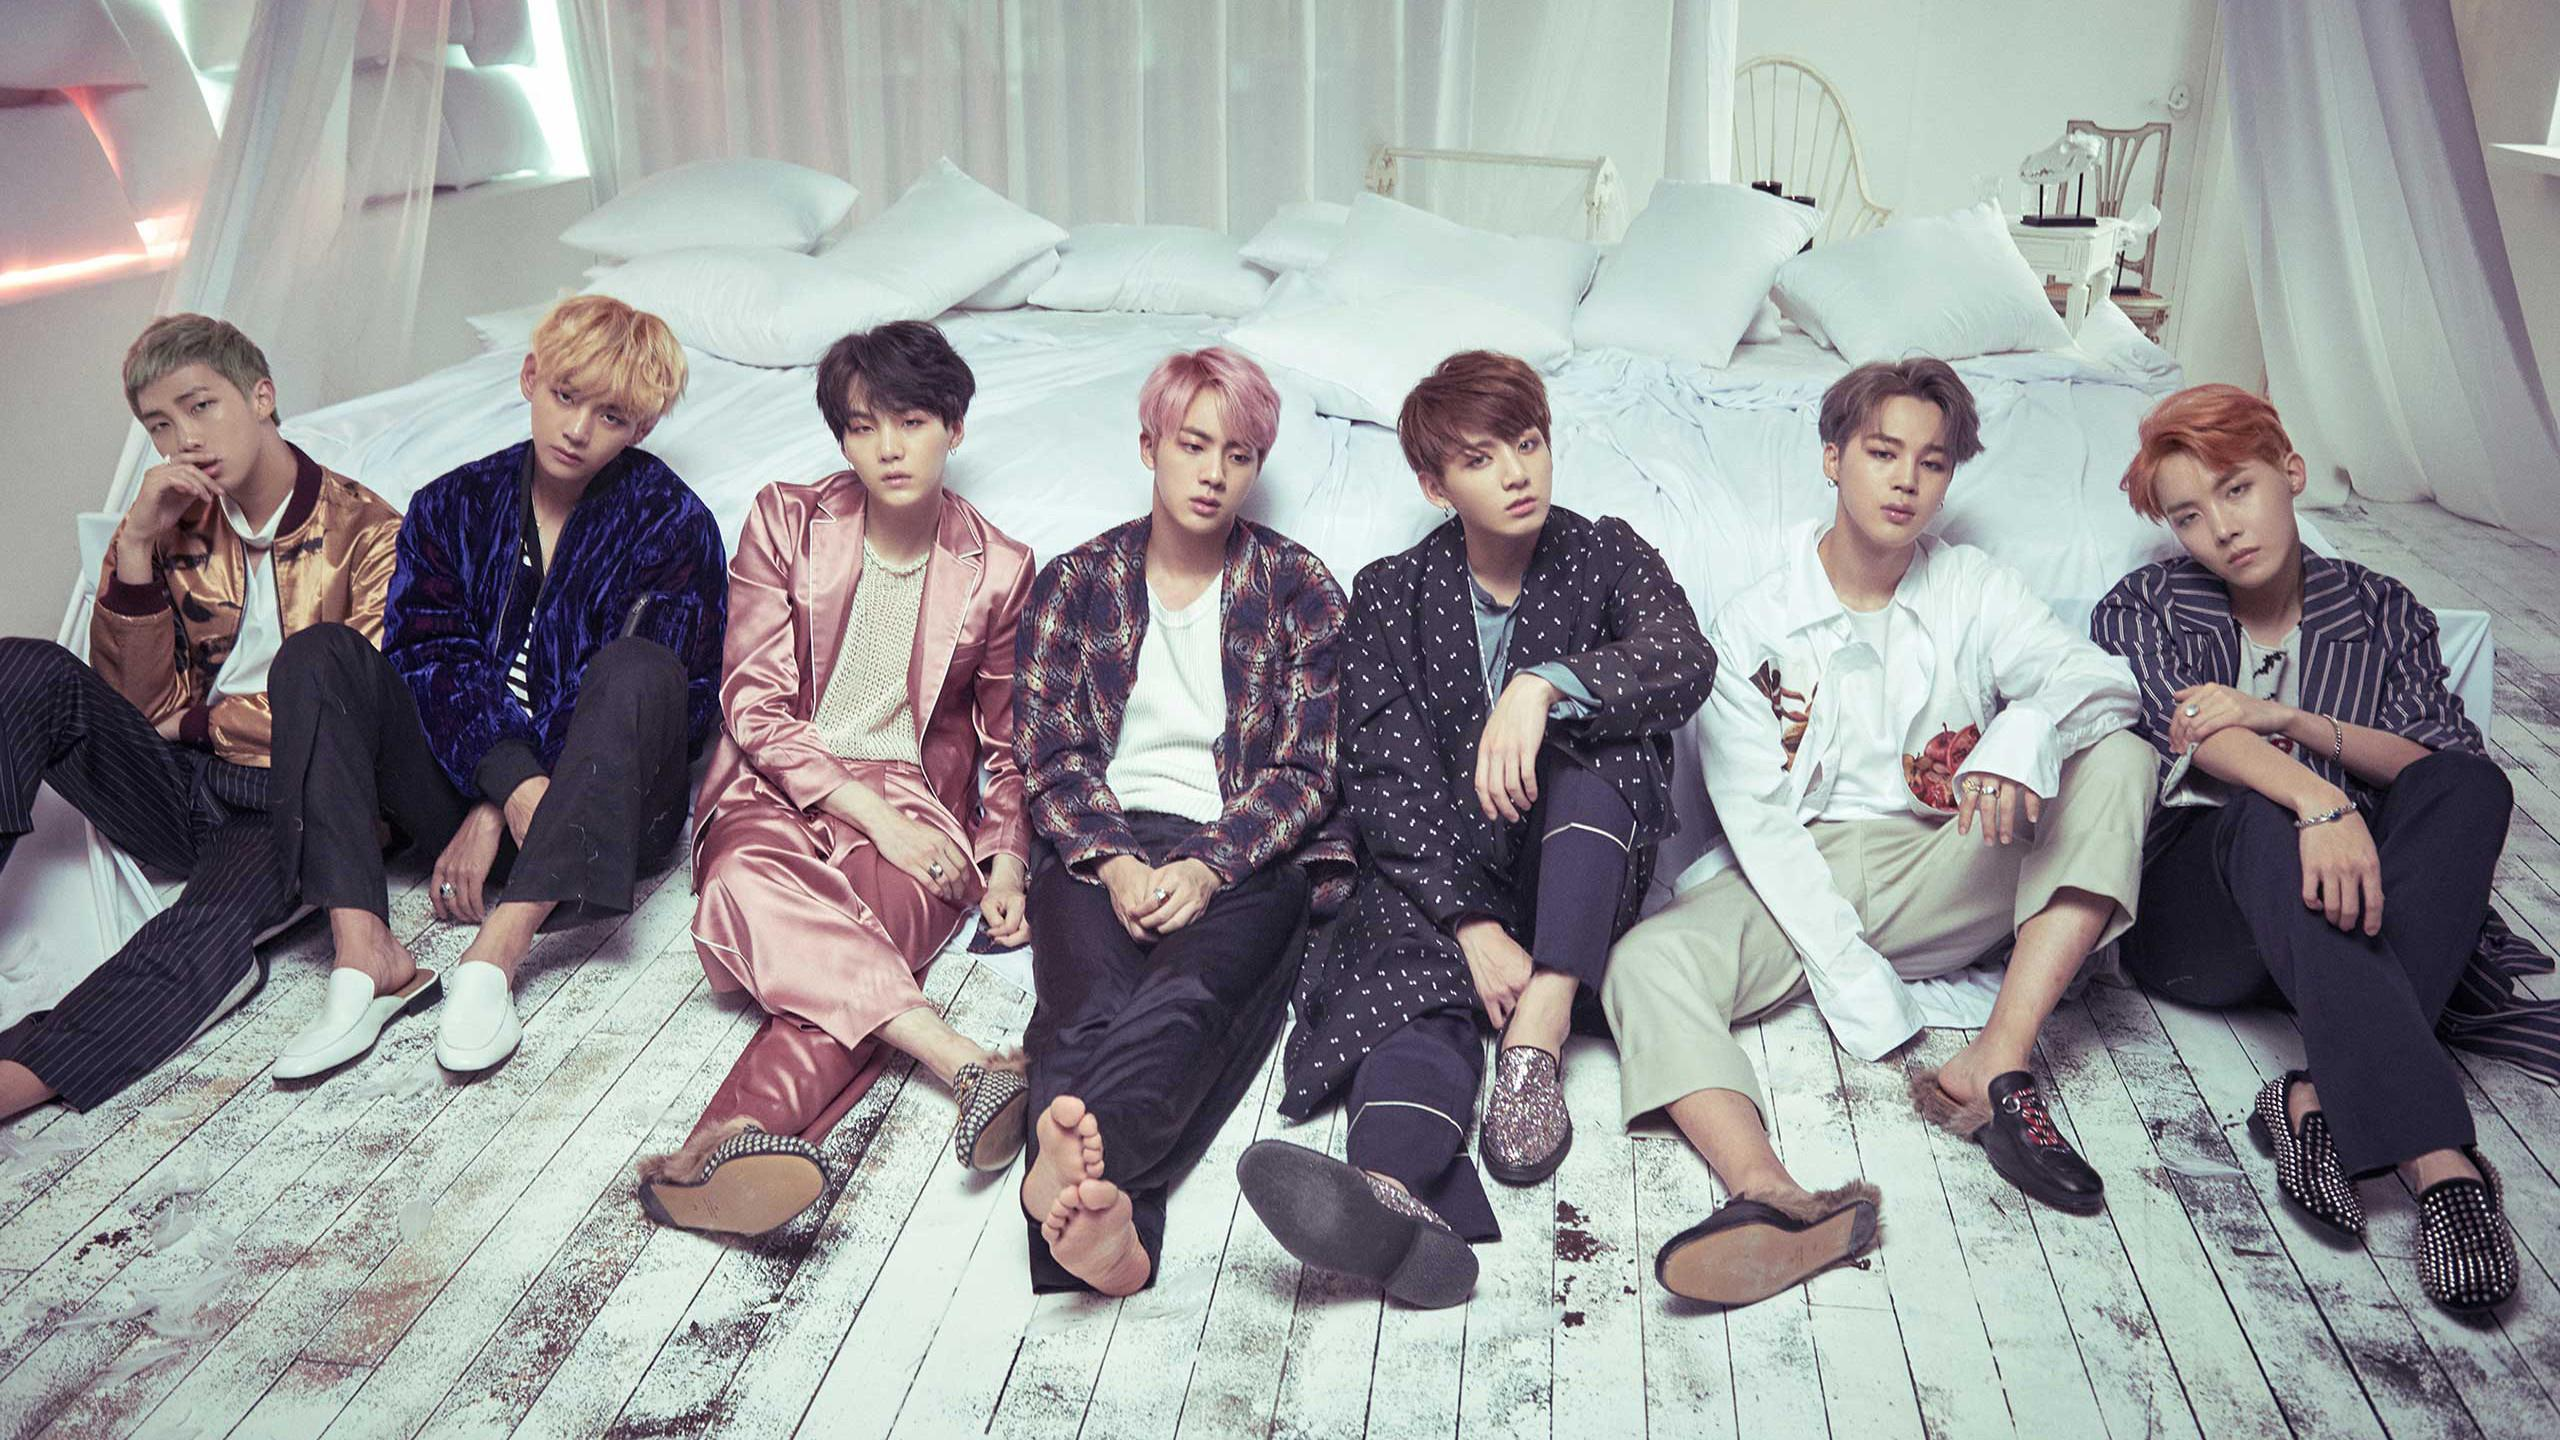 Bts Desktop Wallpaper Hd 2017 , Free Stock Wallpapers on